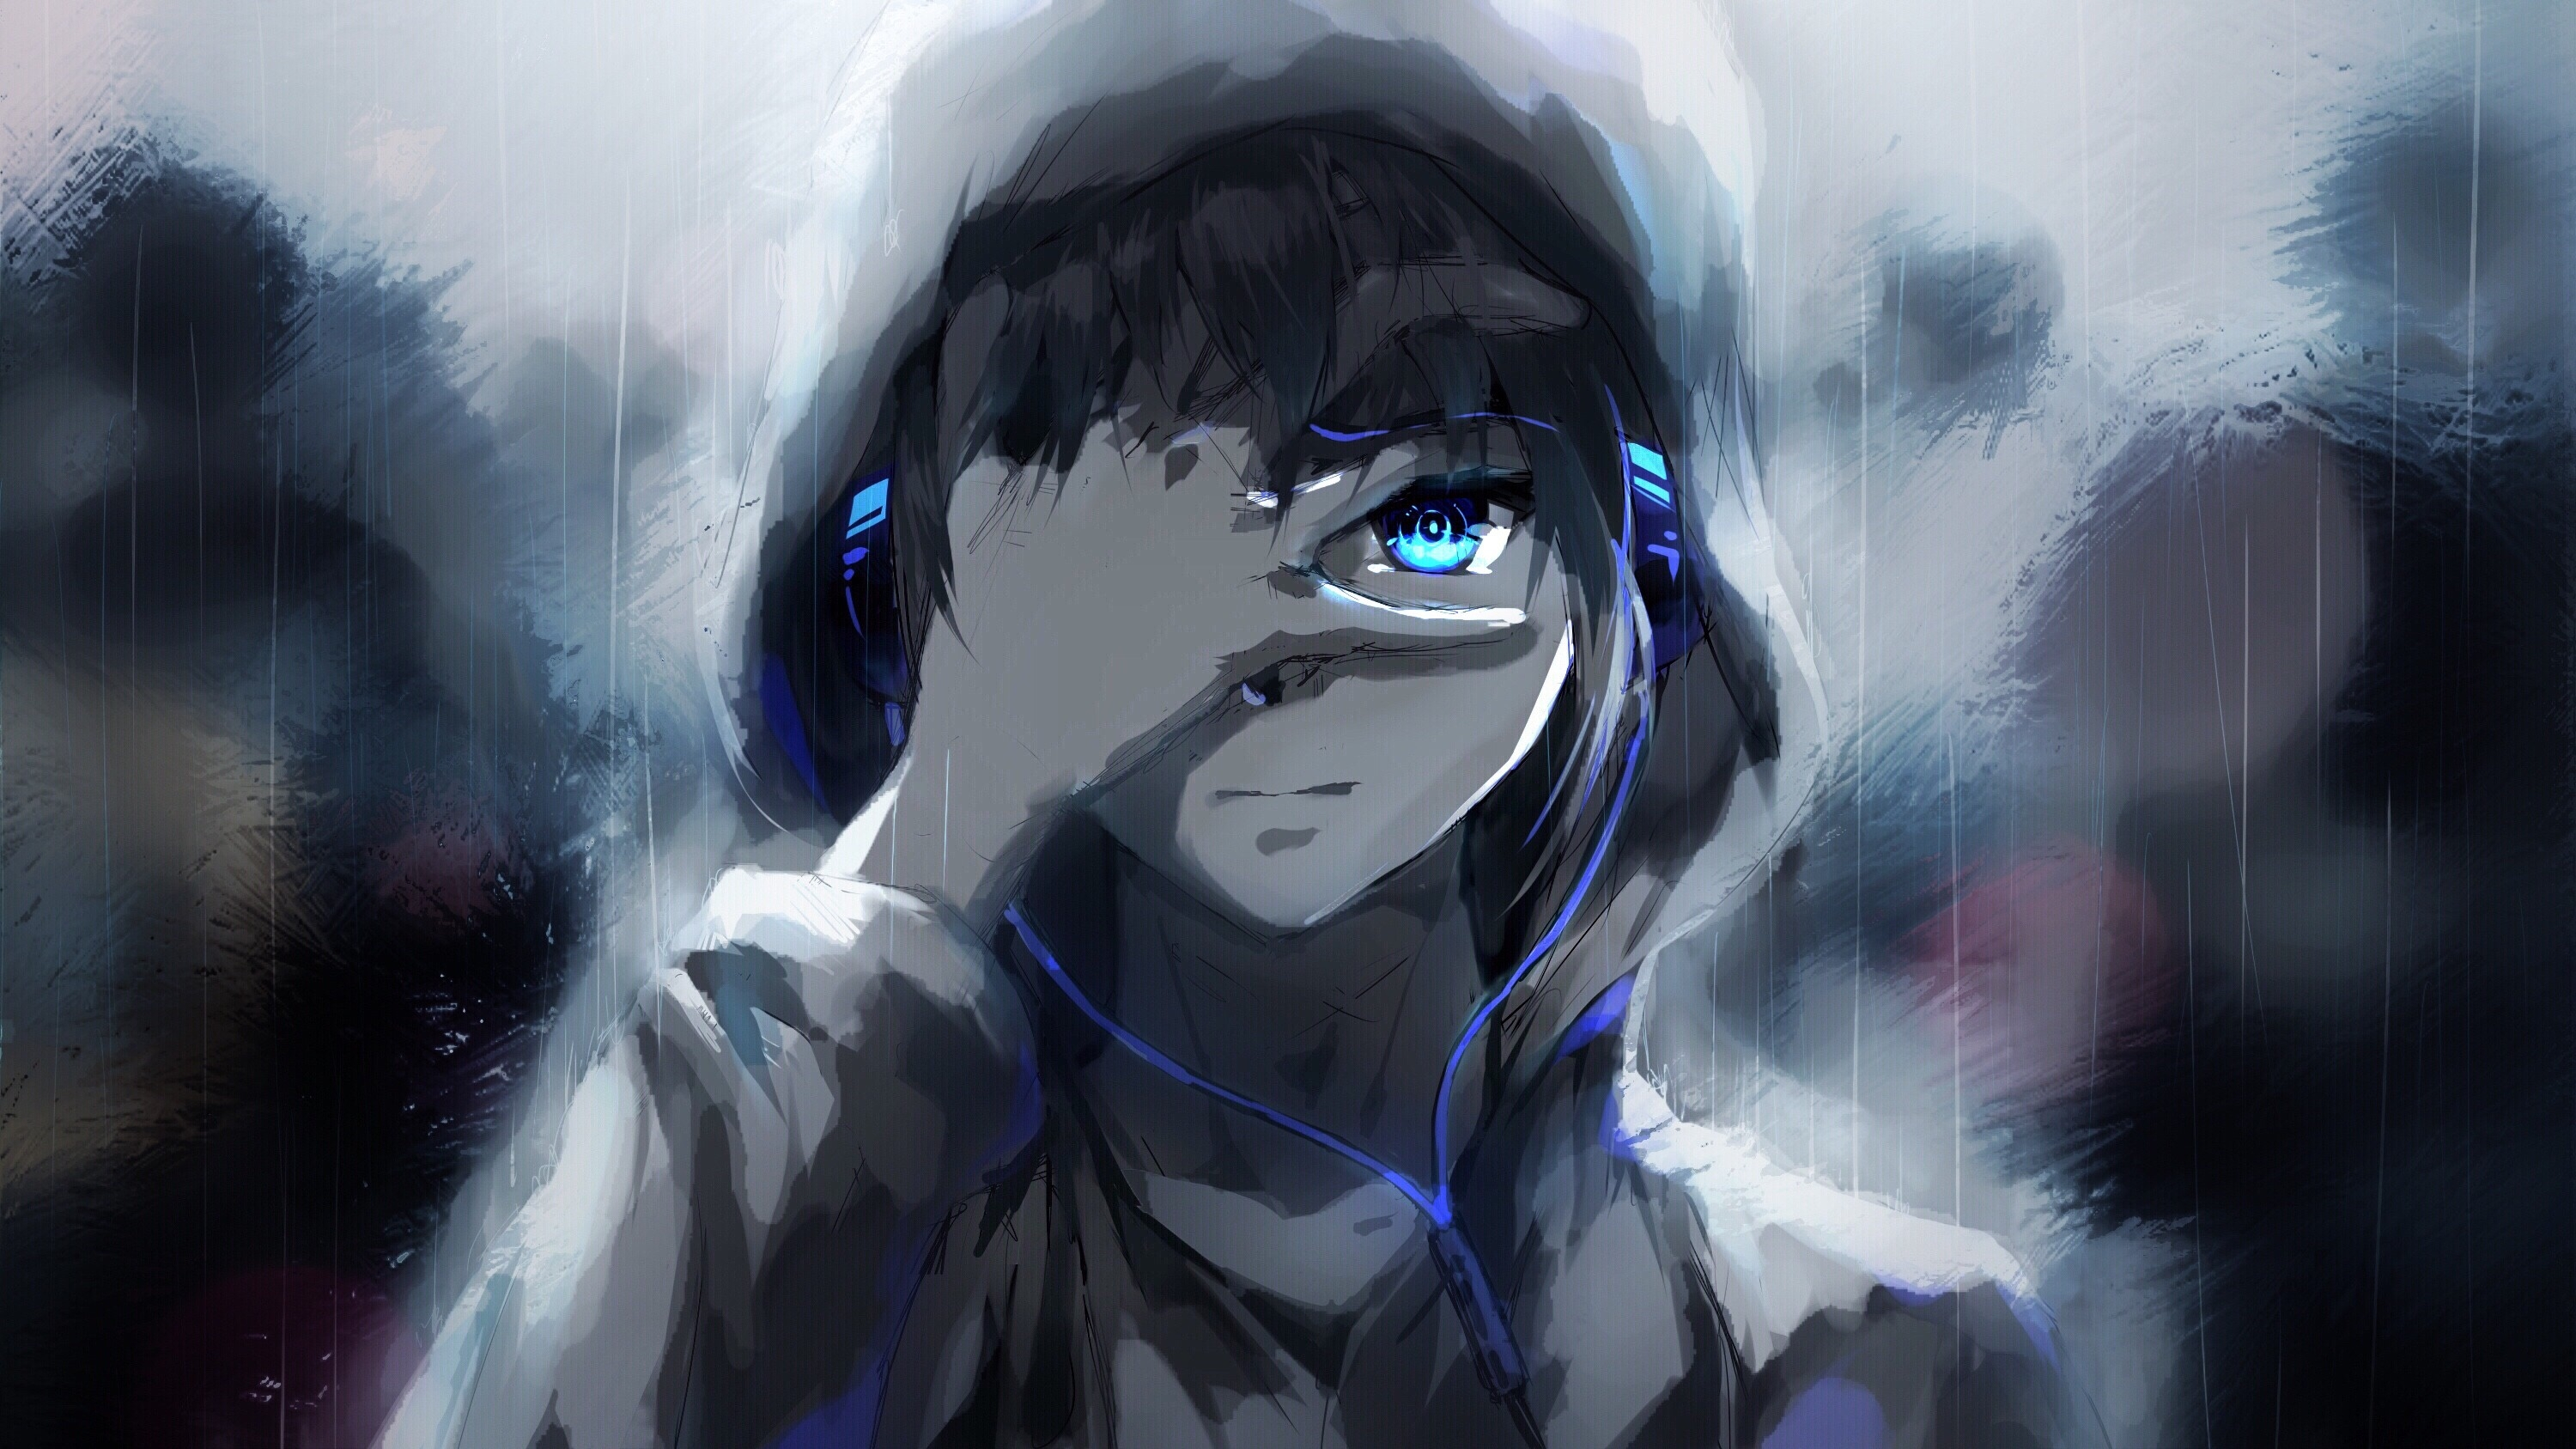 Iphone 7 Wallpaper Size Download 1920x1080 Anime Boy Hoodie Blue Eyes